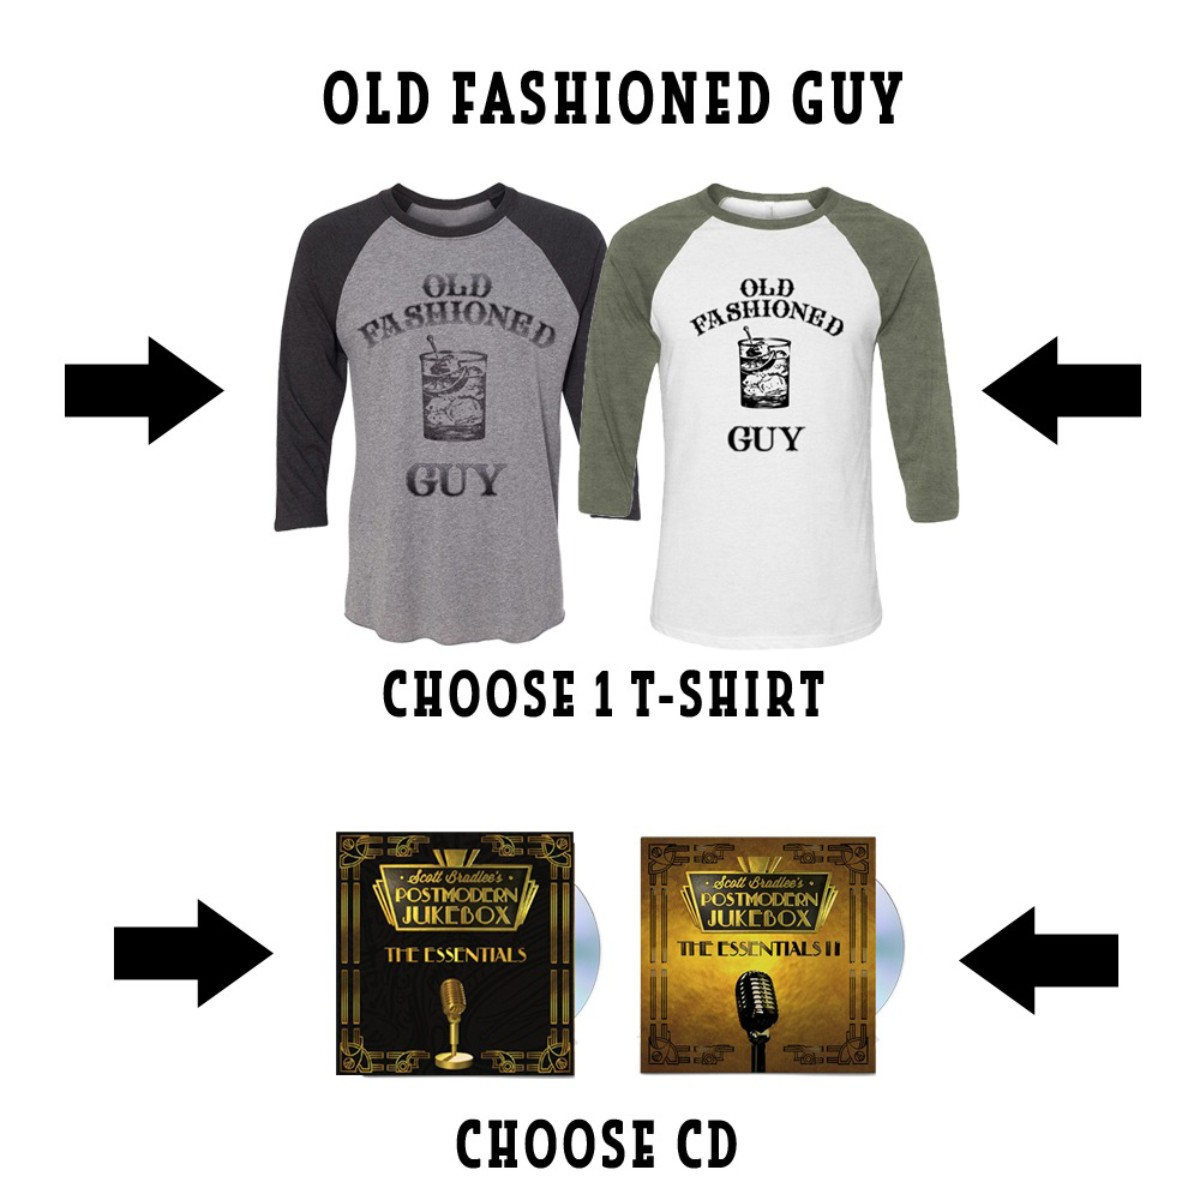 Old Fashioned Guy + Essentials Bundle